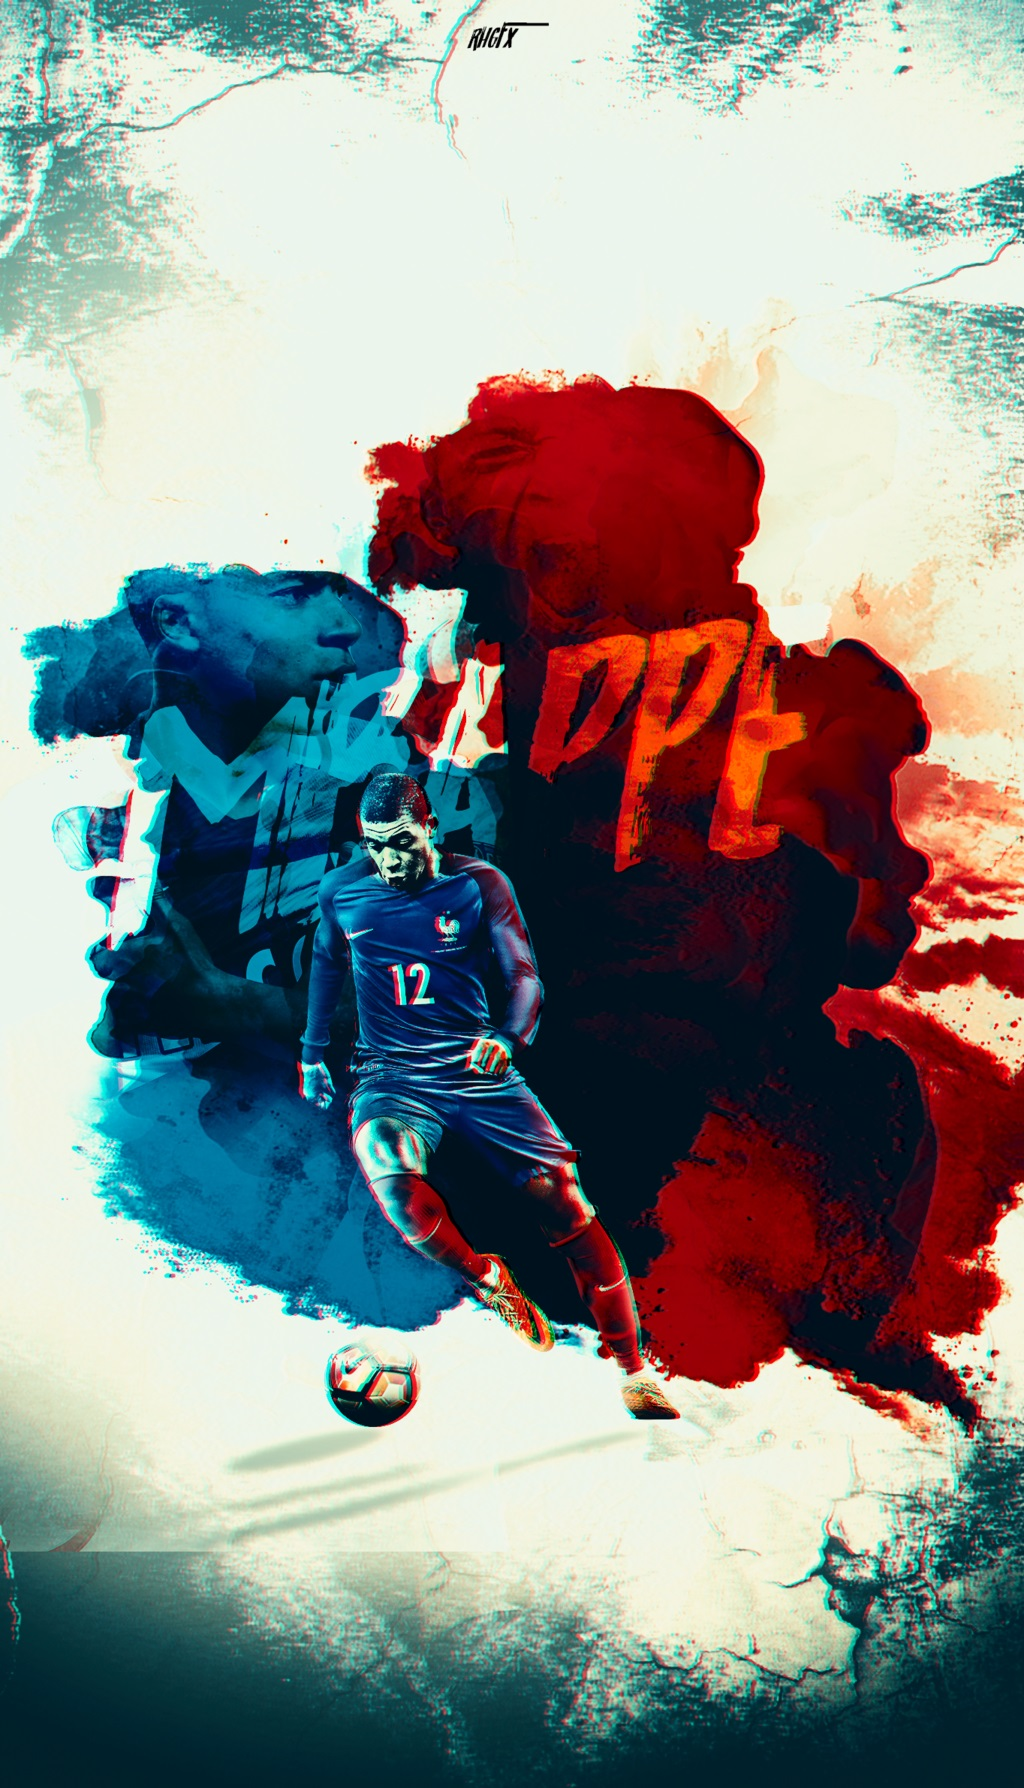 Psg Wallpaper Hd Kylian Mbappe Wallpapers Hd For Desktop And Mobile